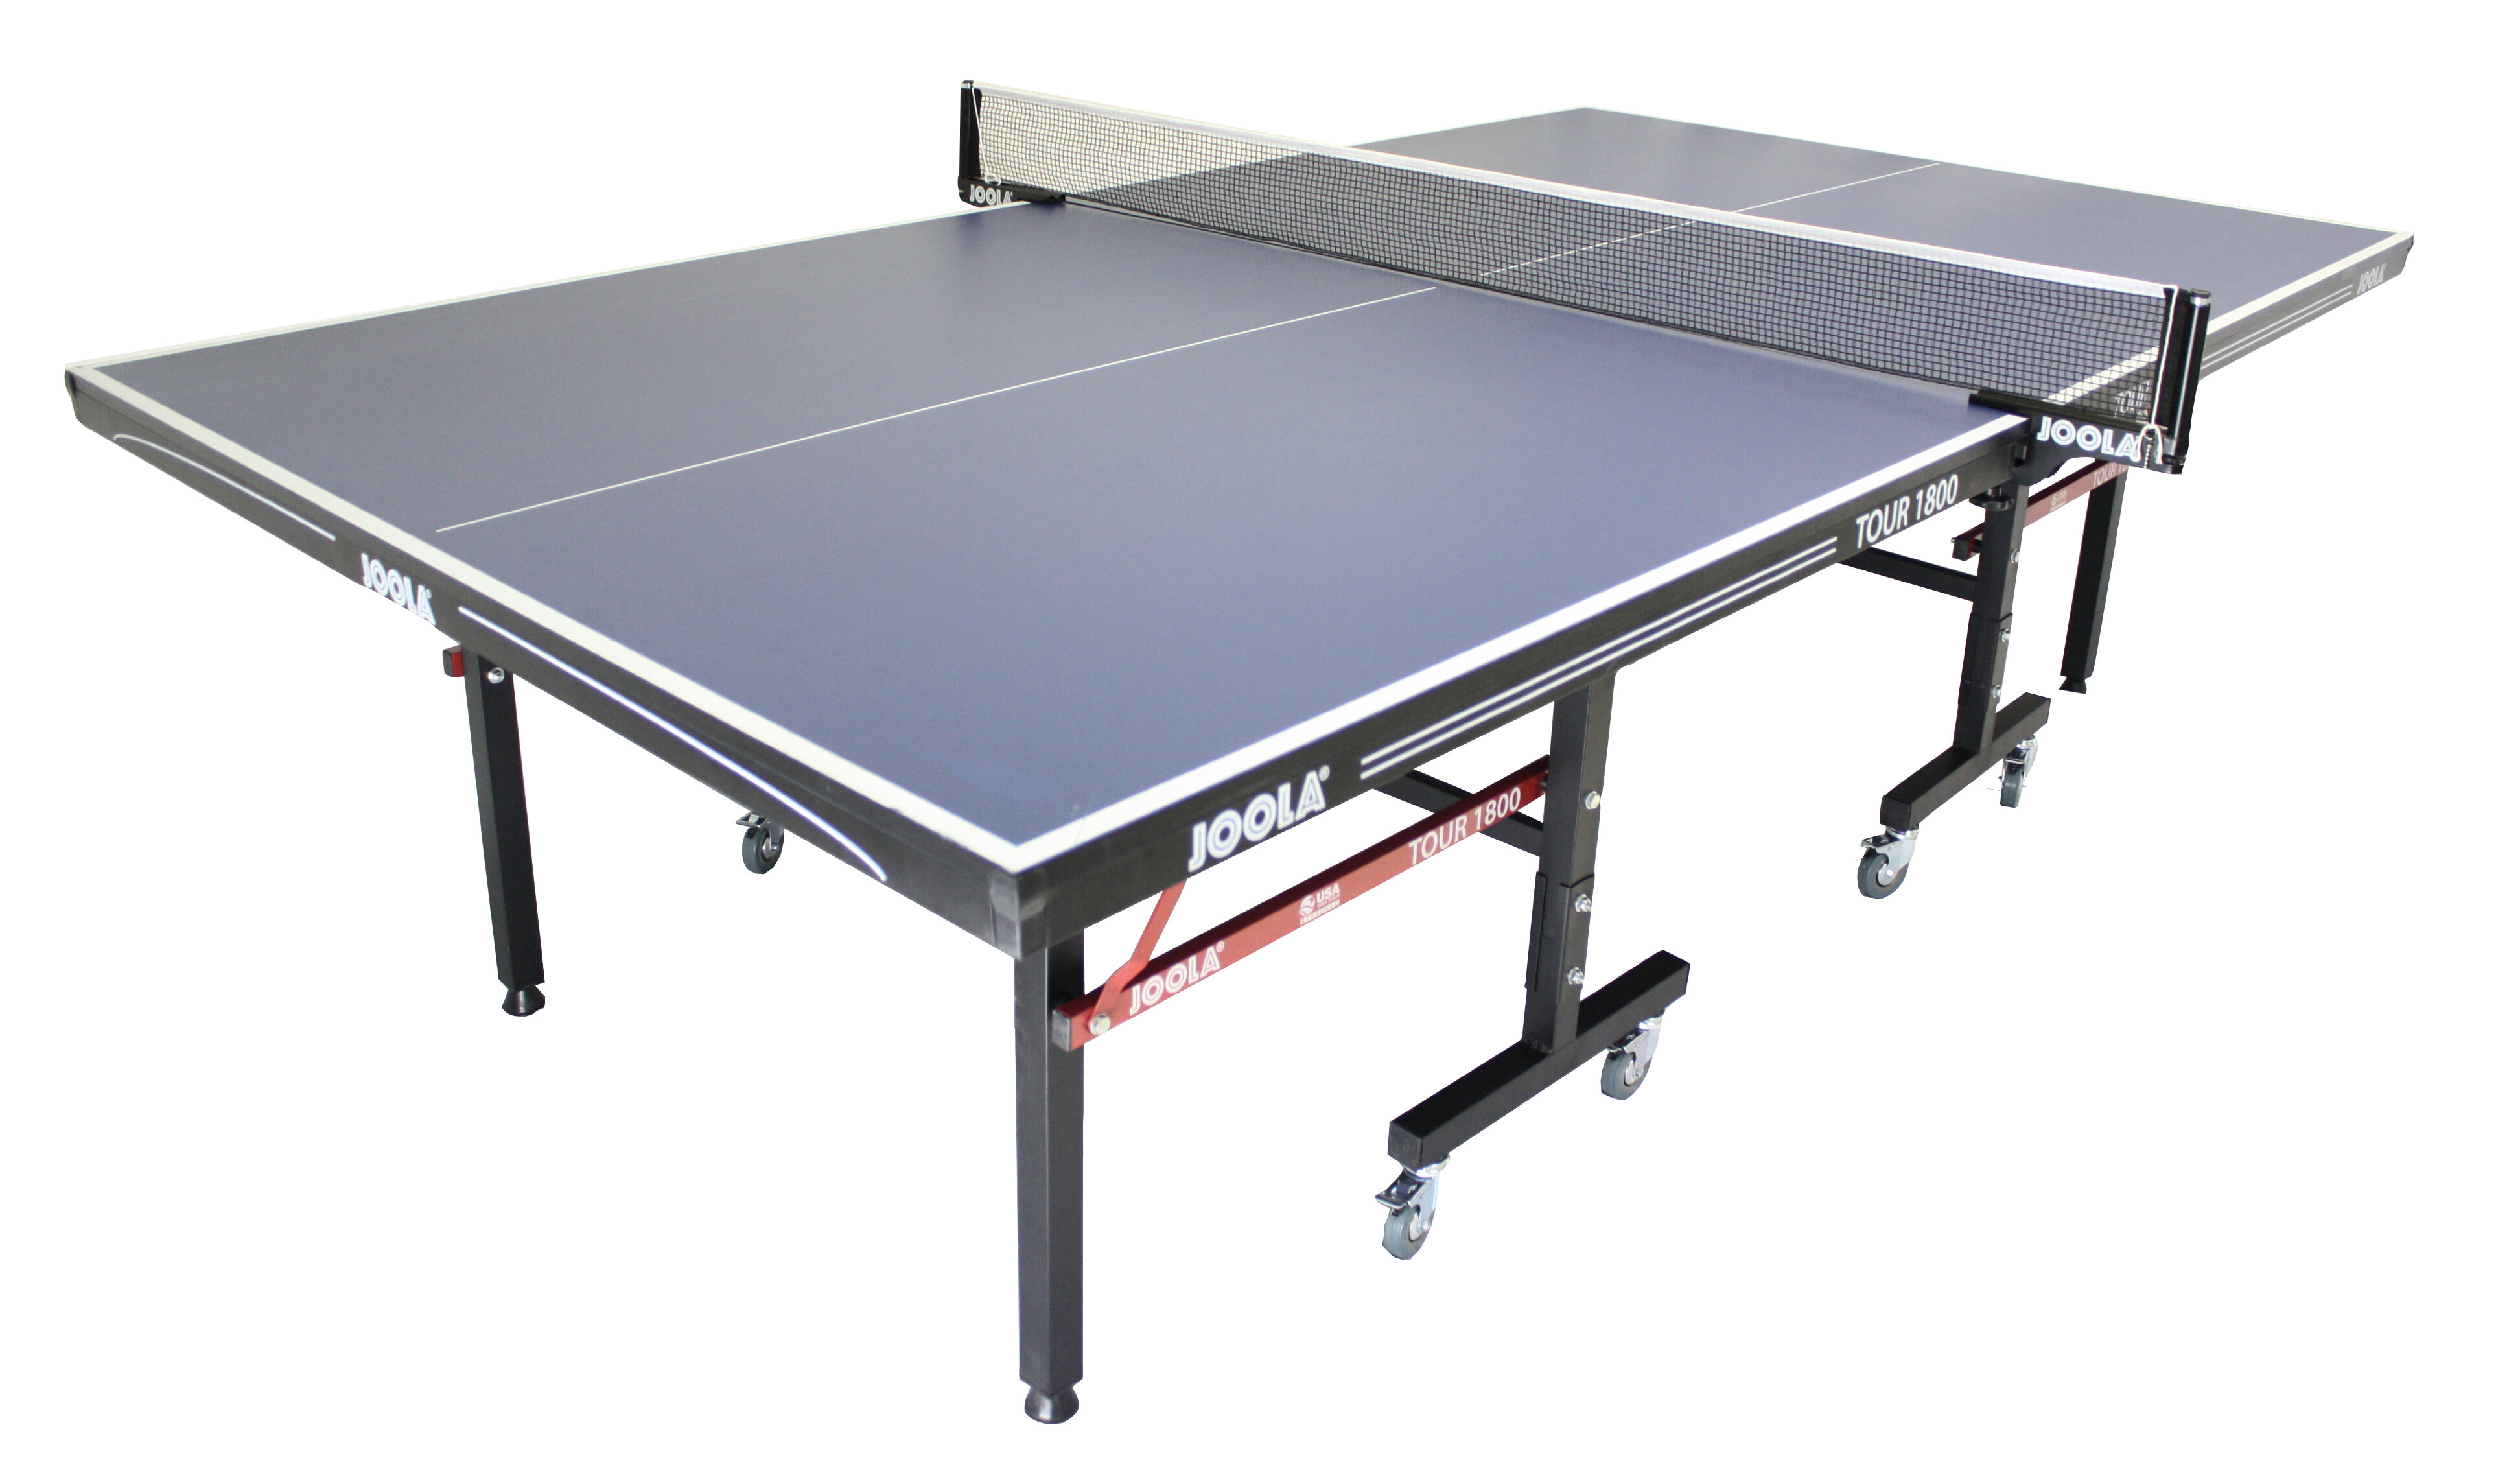 sc 1 st  Wayfair & Joola JOOLA Tour 1800 Table Tennis Table and Net Set | Wayfair